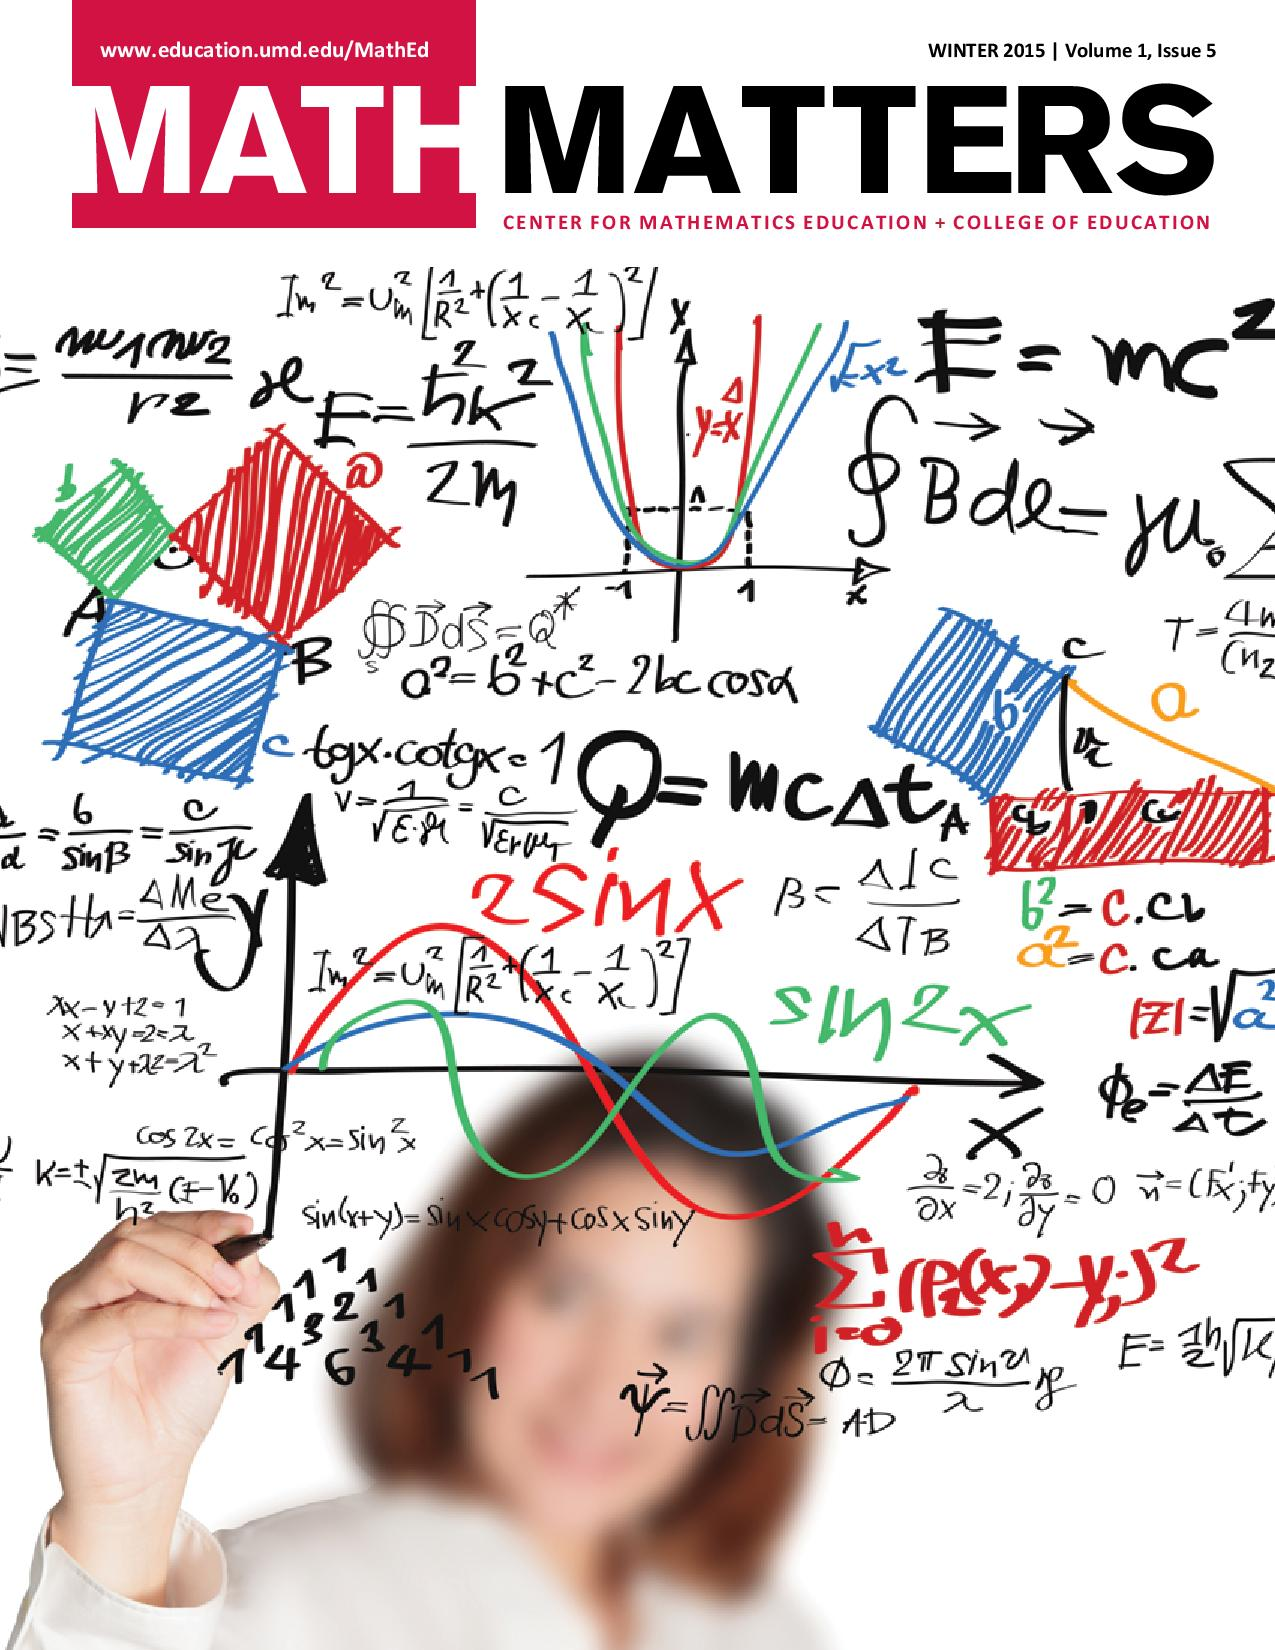 MathMattersW2015_Front Cover